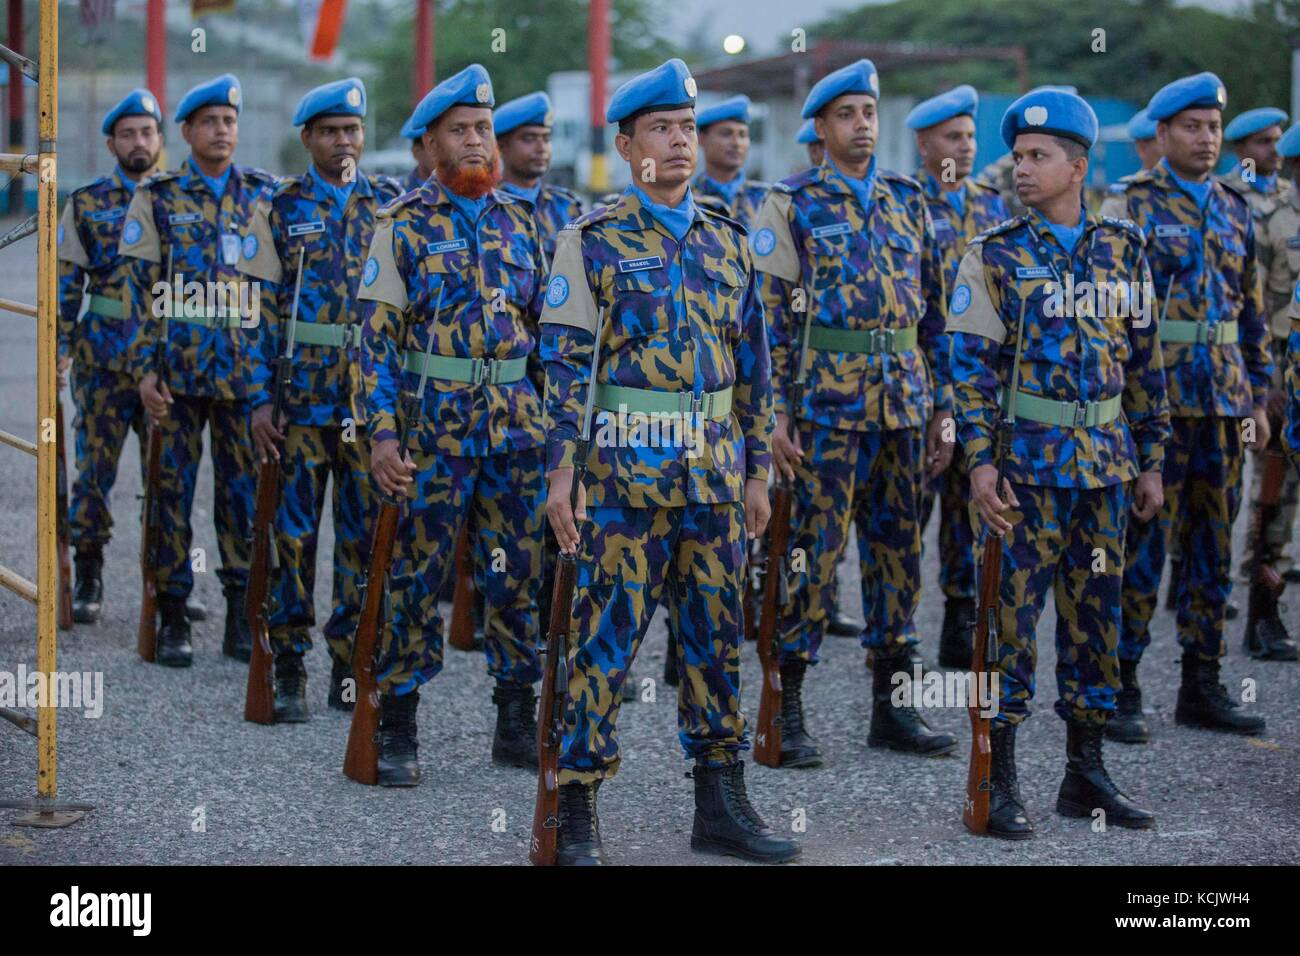 united nations mission in haiti It was tasked to coordinate united nations efforts to support the government of haiti in restoration of democracy, promoting institution building national re conciliation and economic rehabilitation and to attain environments conducive to the establishment of an effective police force.